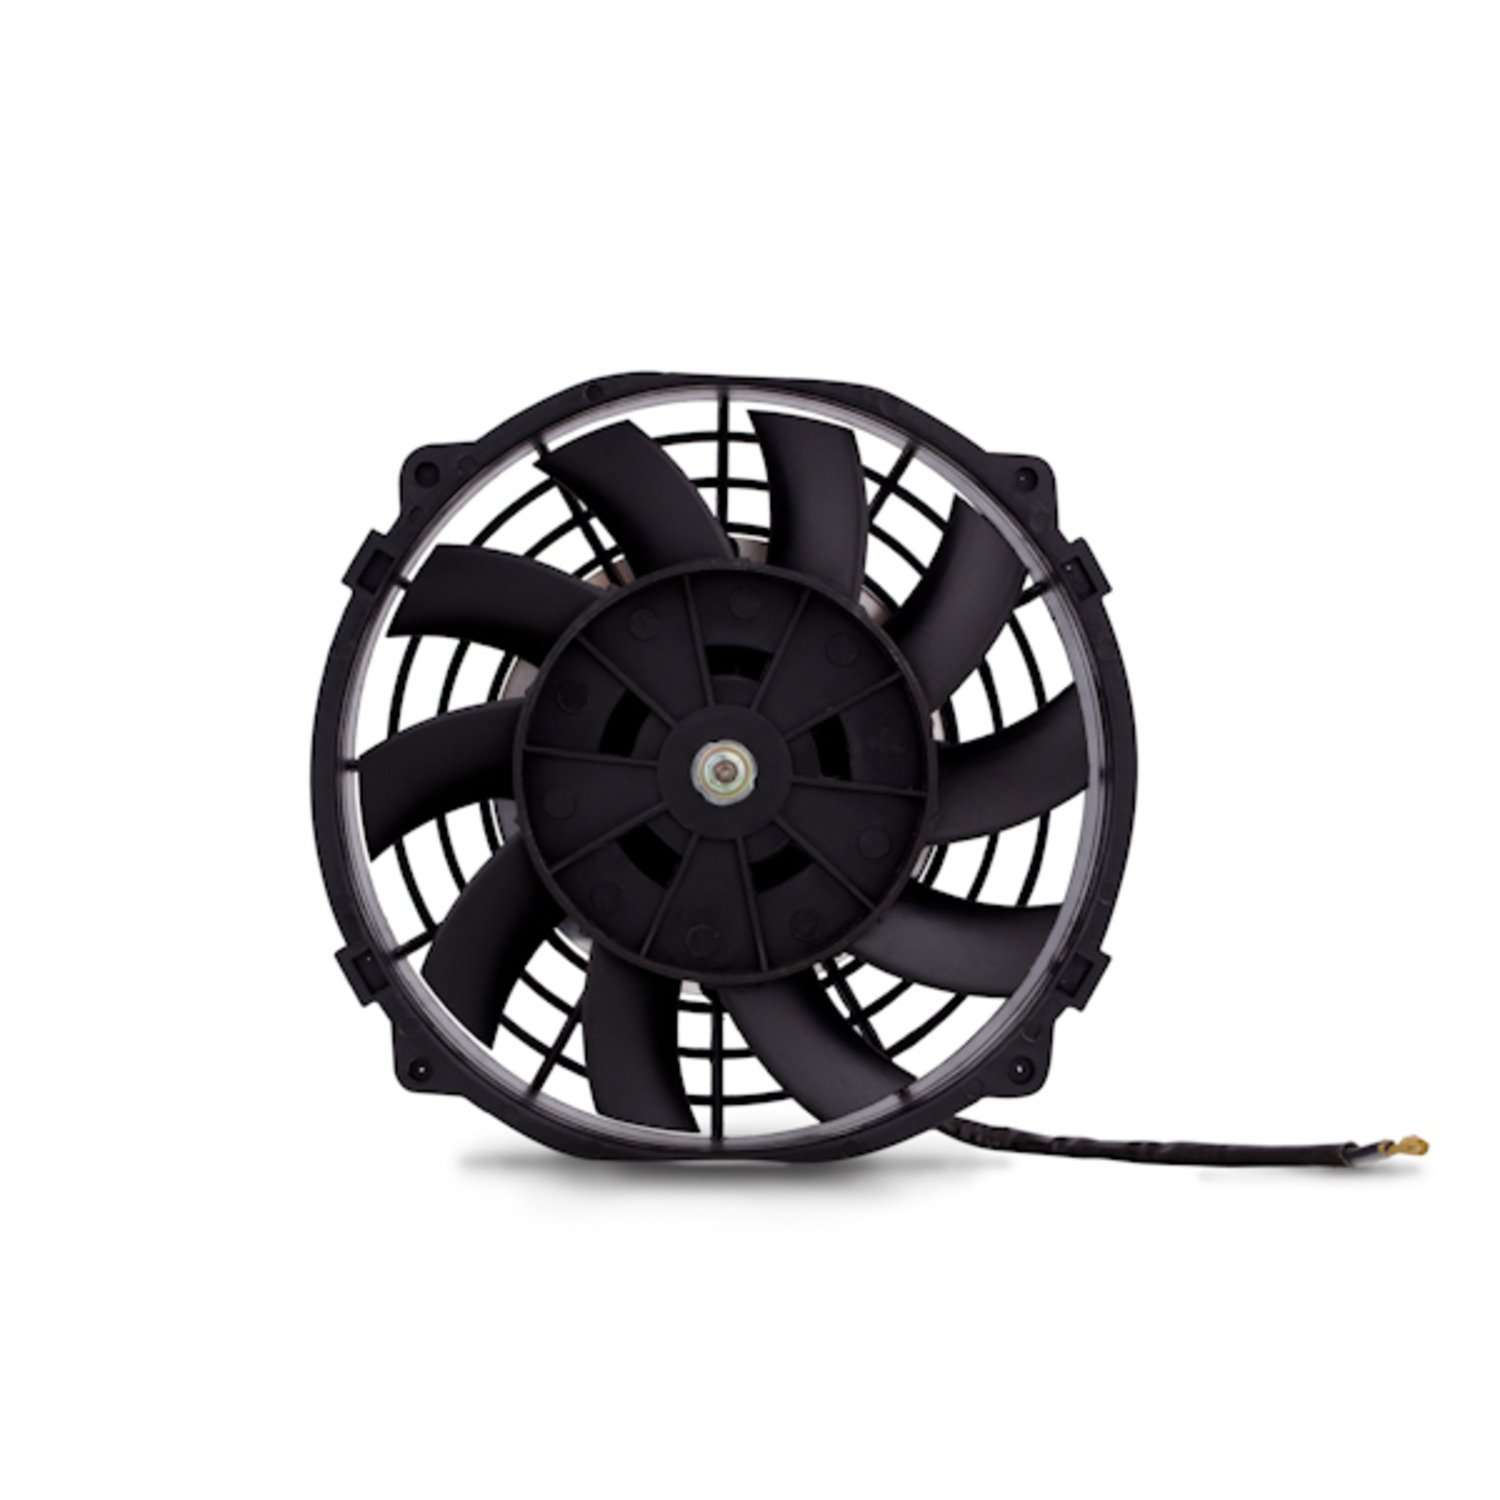 Mishimoto  MMFAN-8 Slim Electric Fan 8 Black